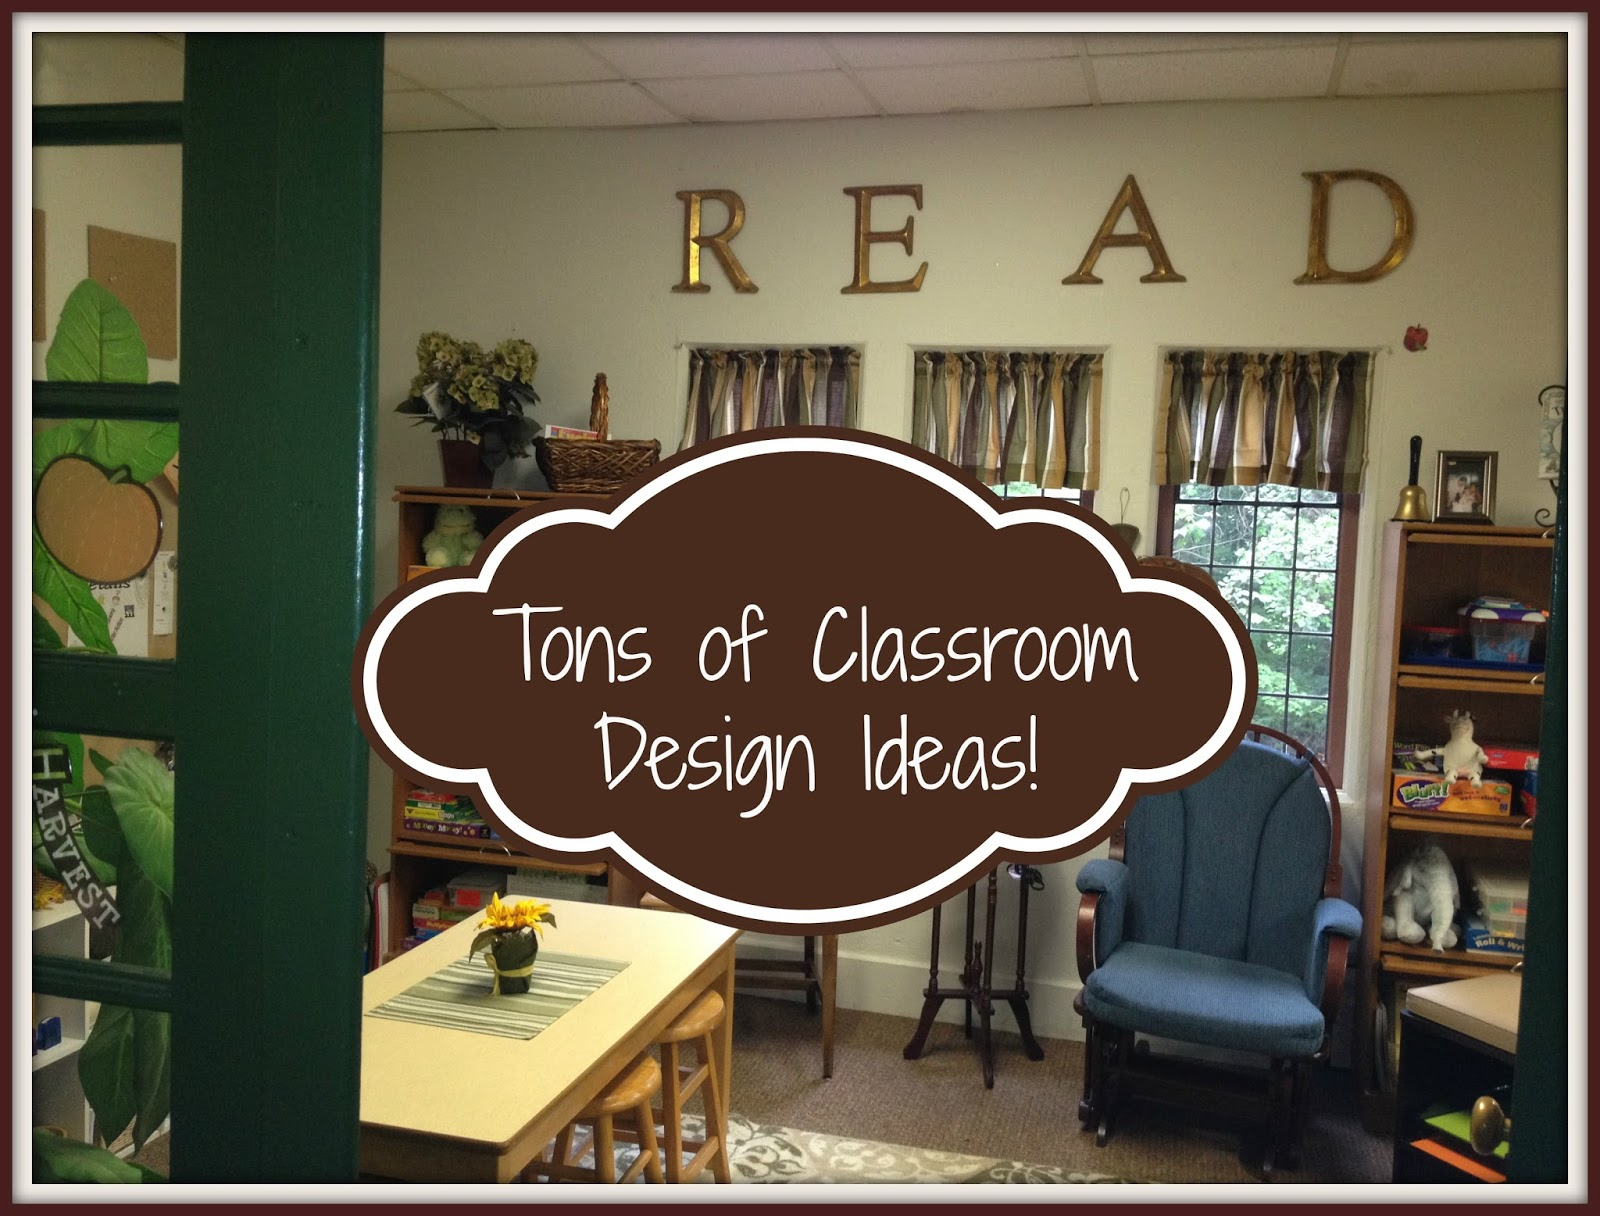 Unique Classroom Design Ideas ~ Tons of classroom design ideas for setting up your cozy